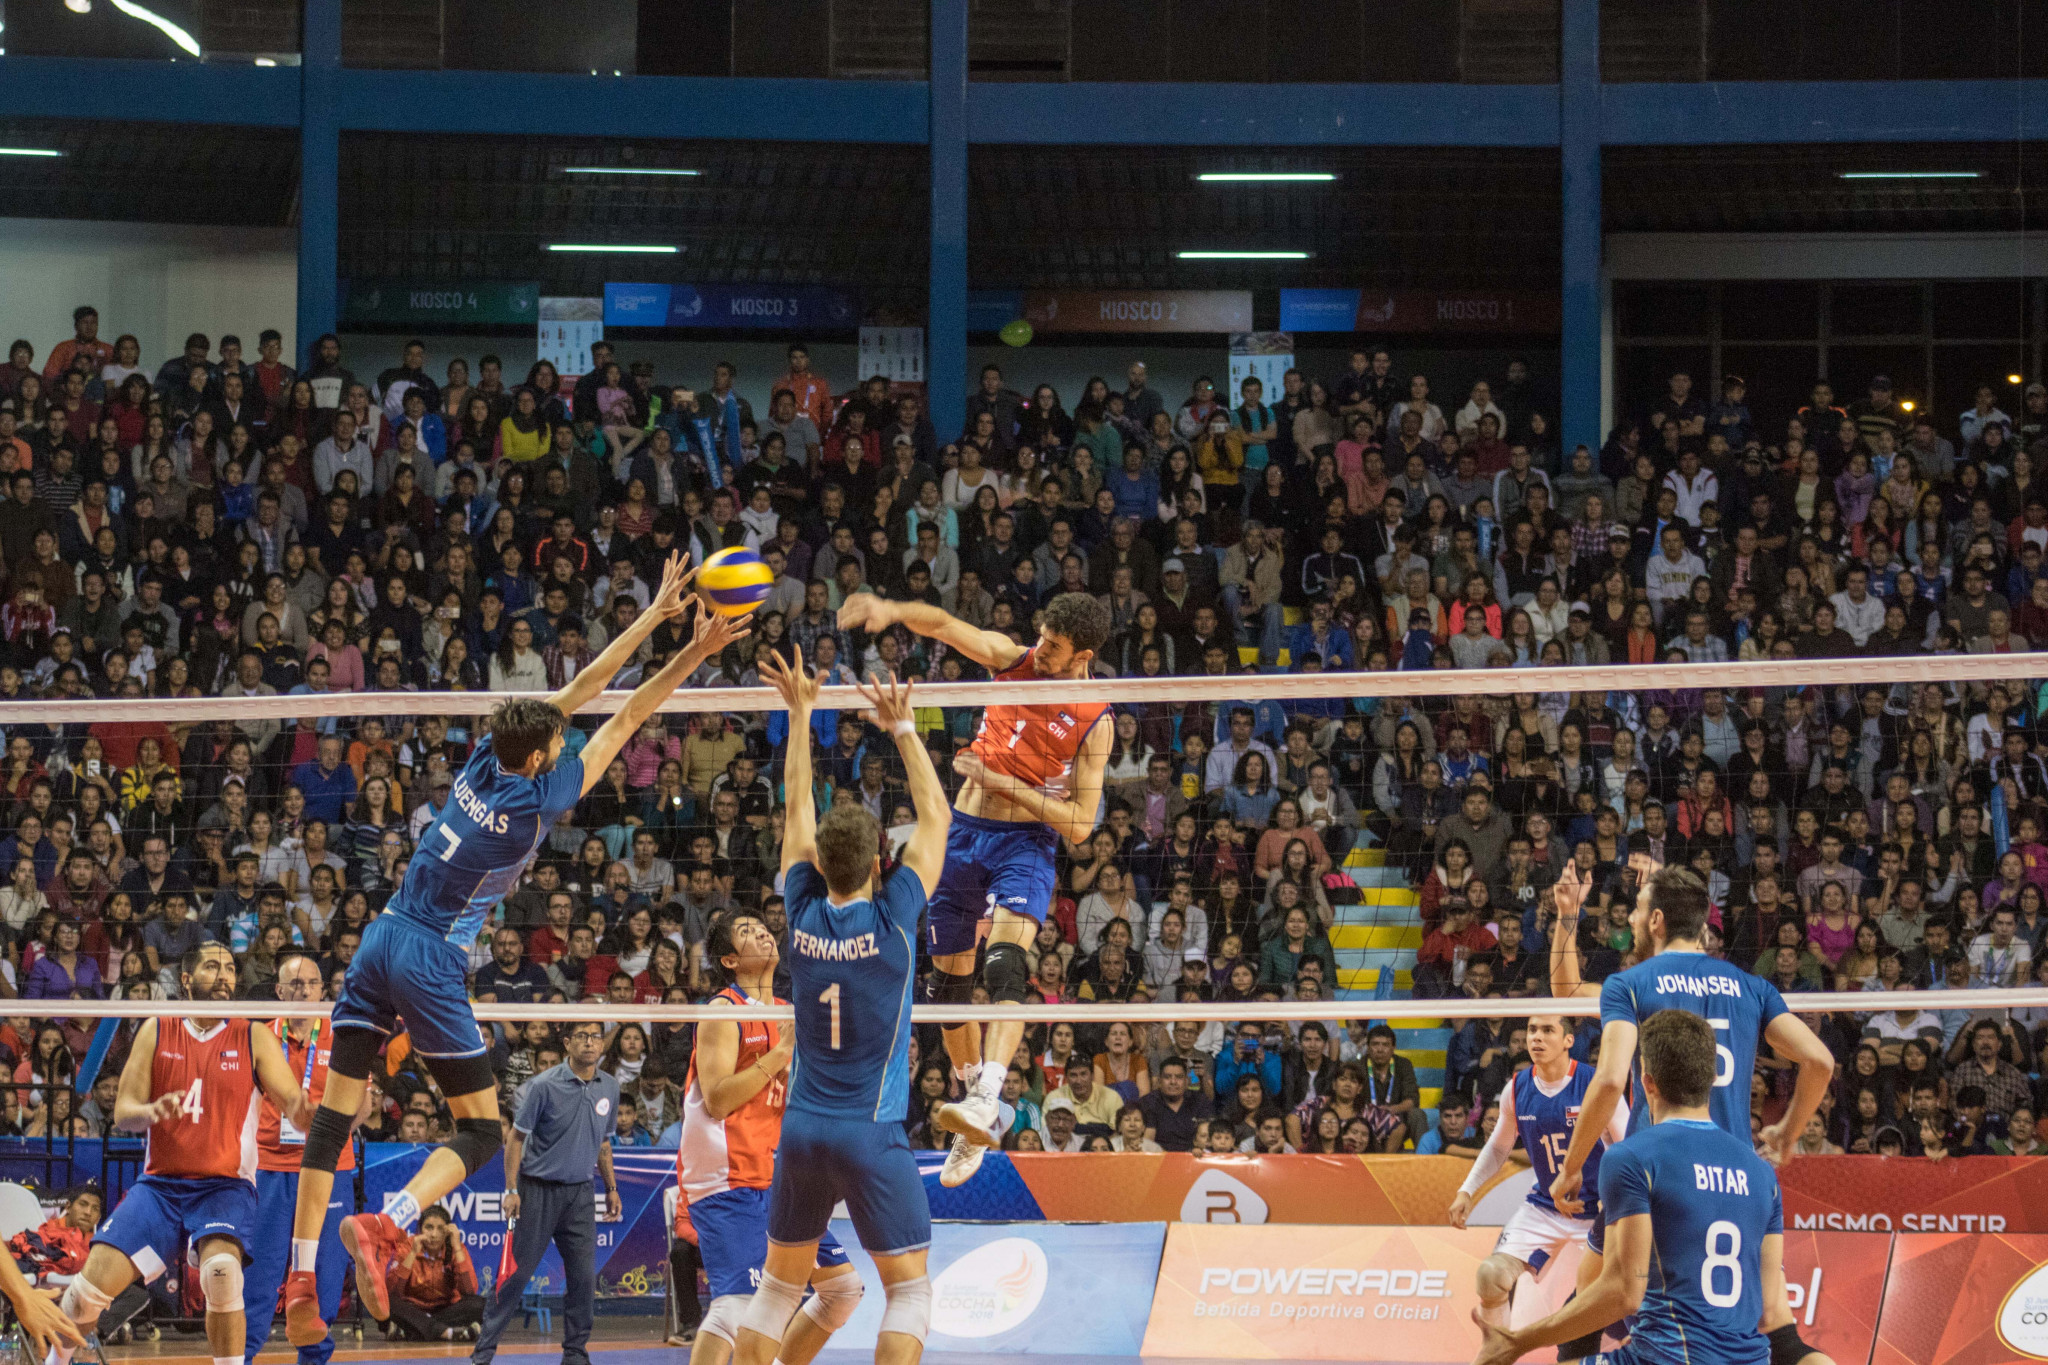 Argentina claimed the men's volleyball title at the 2018 South American Games after beating Chile in today's final in Cochabamba in Bolivia ©Cochabamba 2018